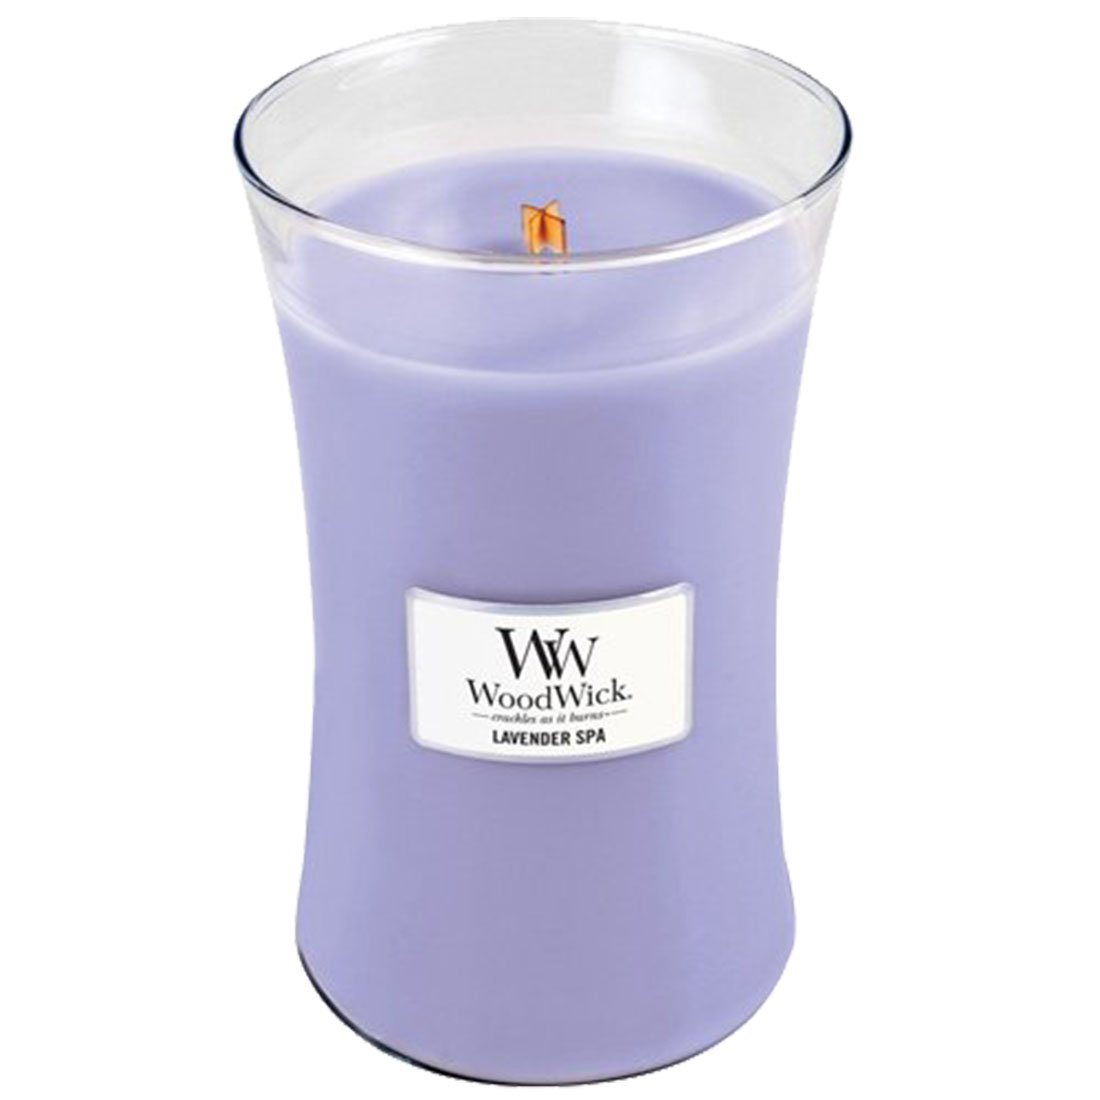 Woodwick Candle, Large, Lavender Spa 21.05oz by WoodWick